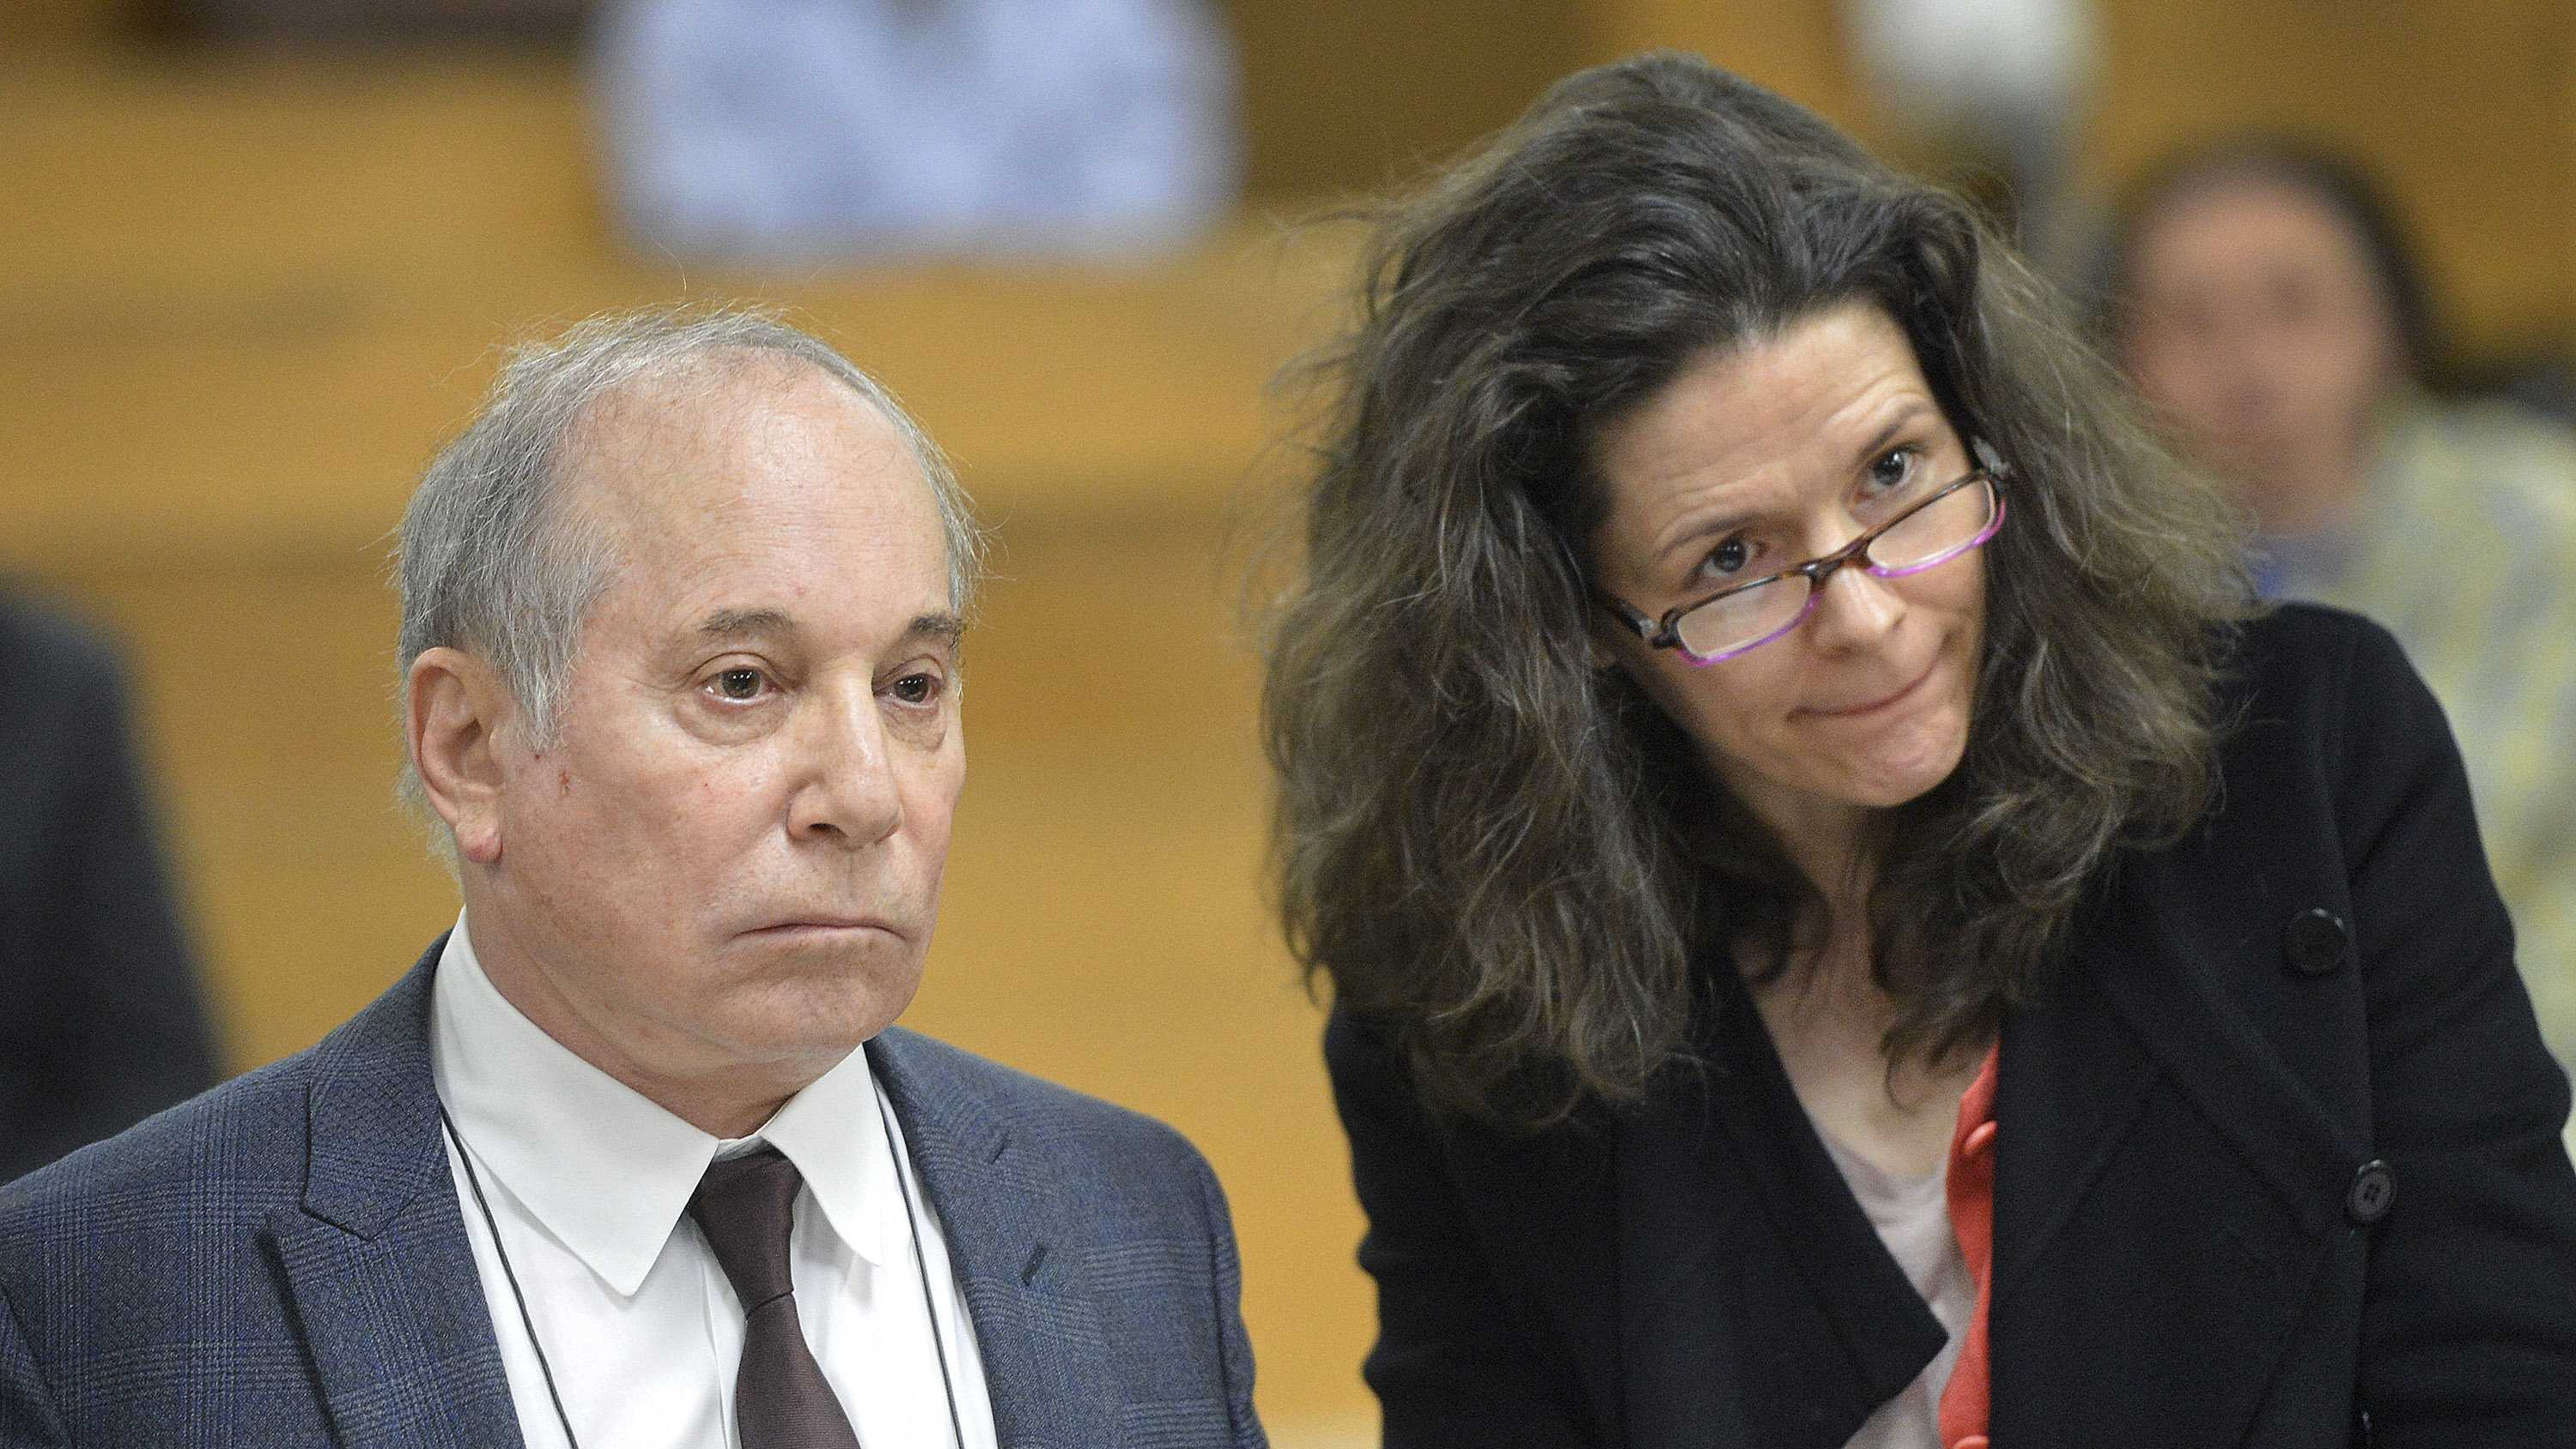 Paul Simon Edie Brickell in court 4.28.14